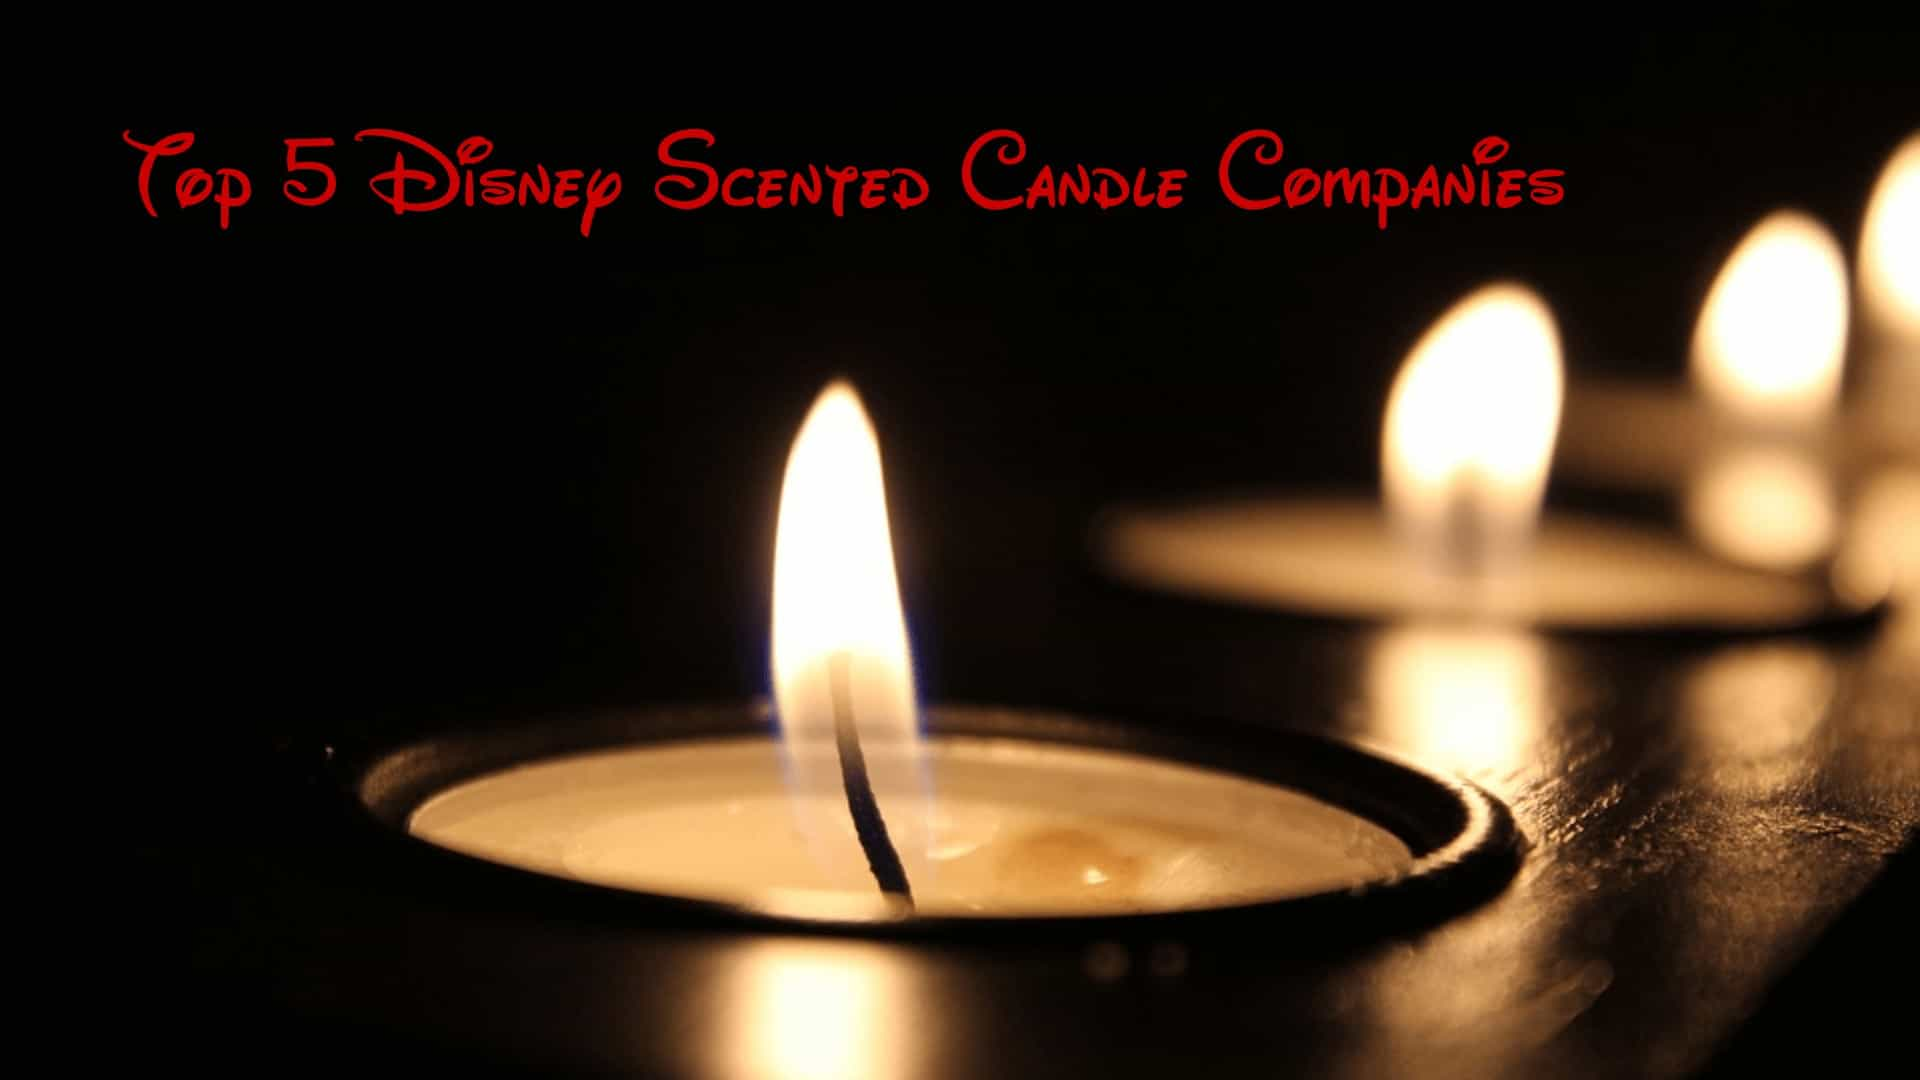 Best Disney Scented Candle Companies (Our Top 5) Tips 1